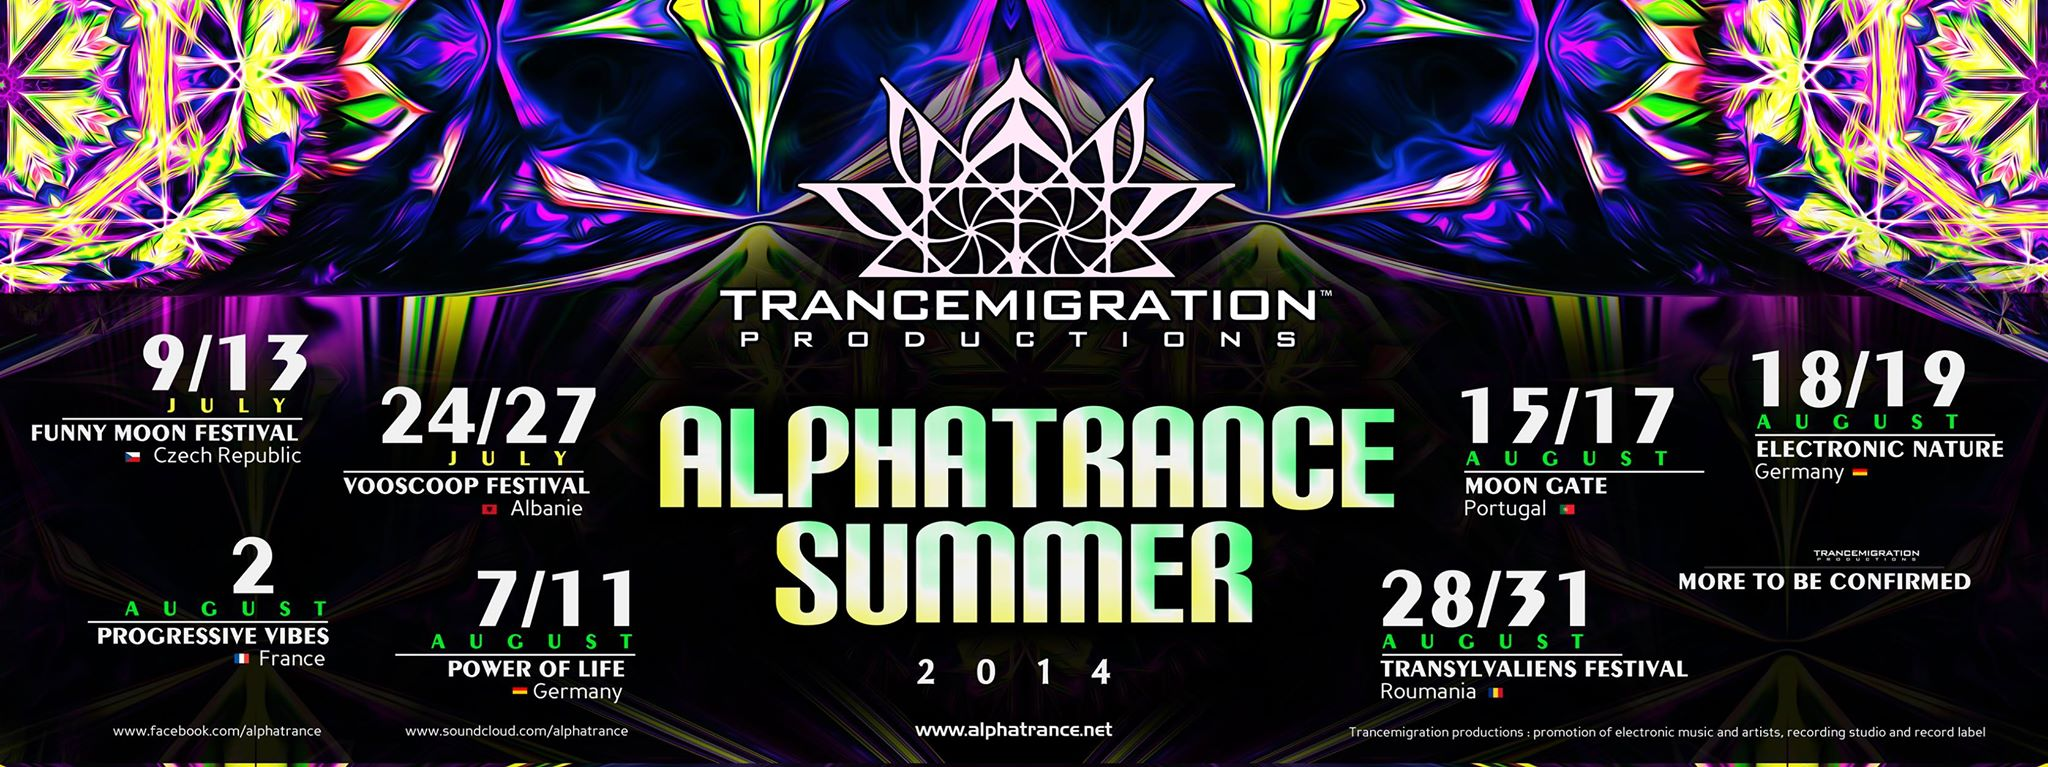 Alphatrance summer tour 2014